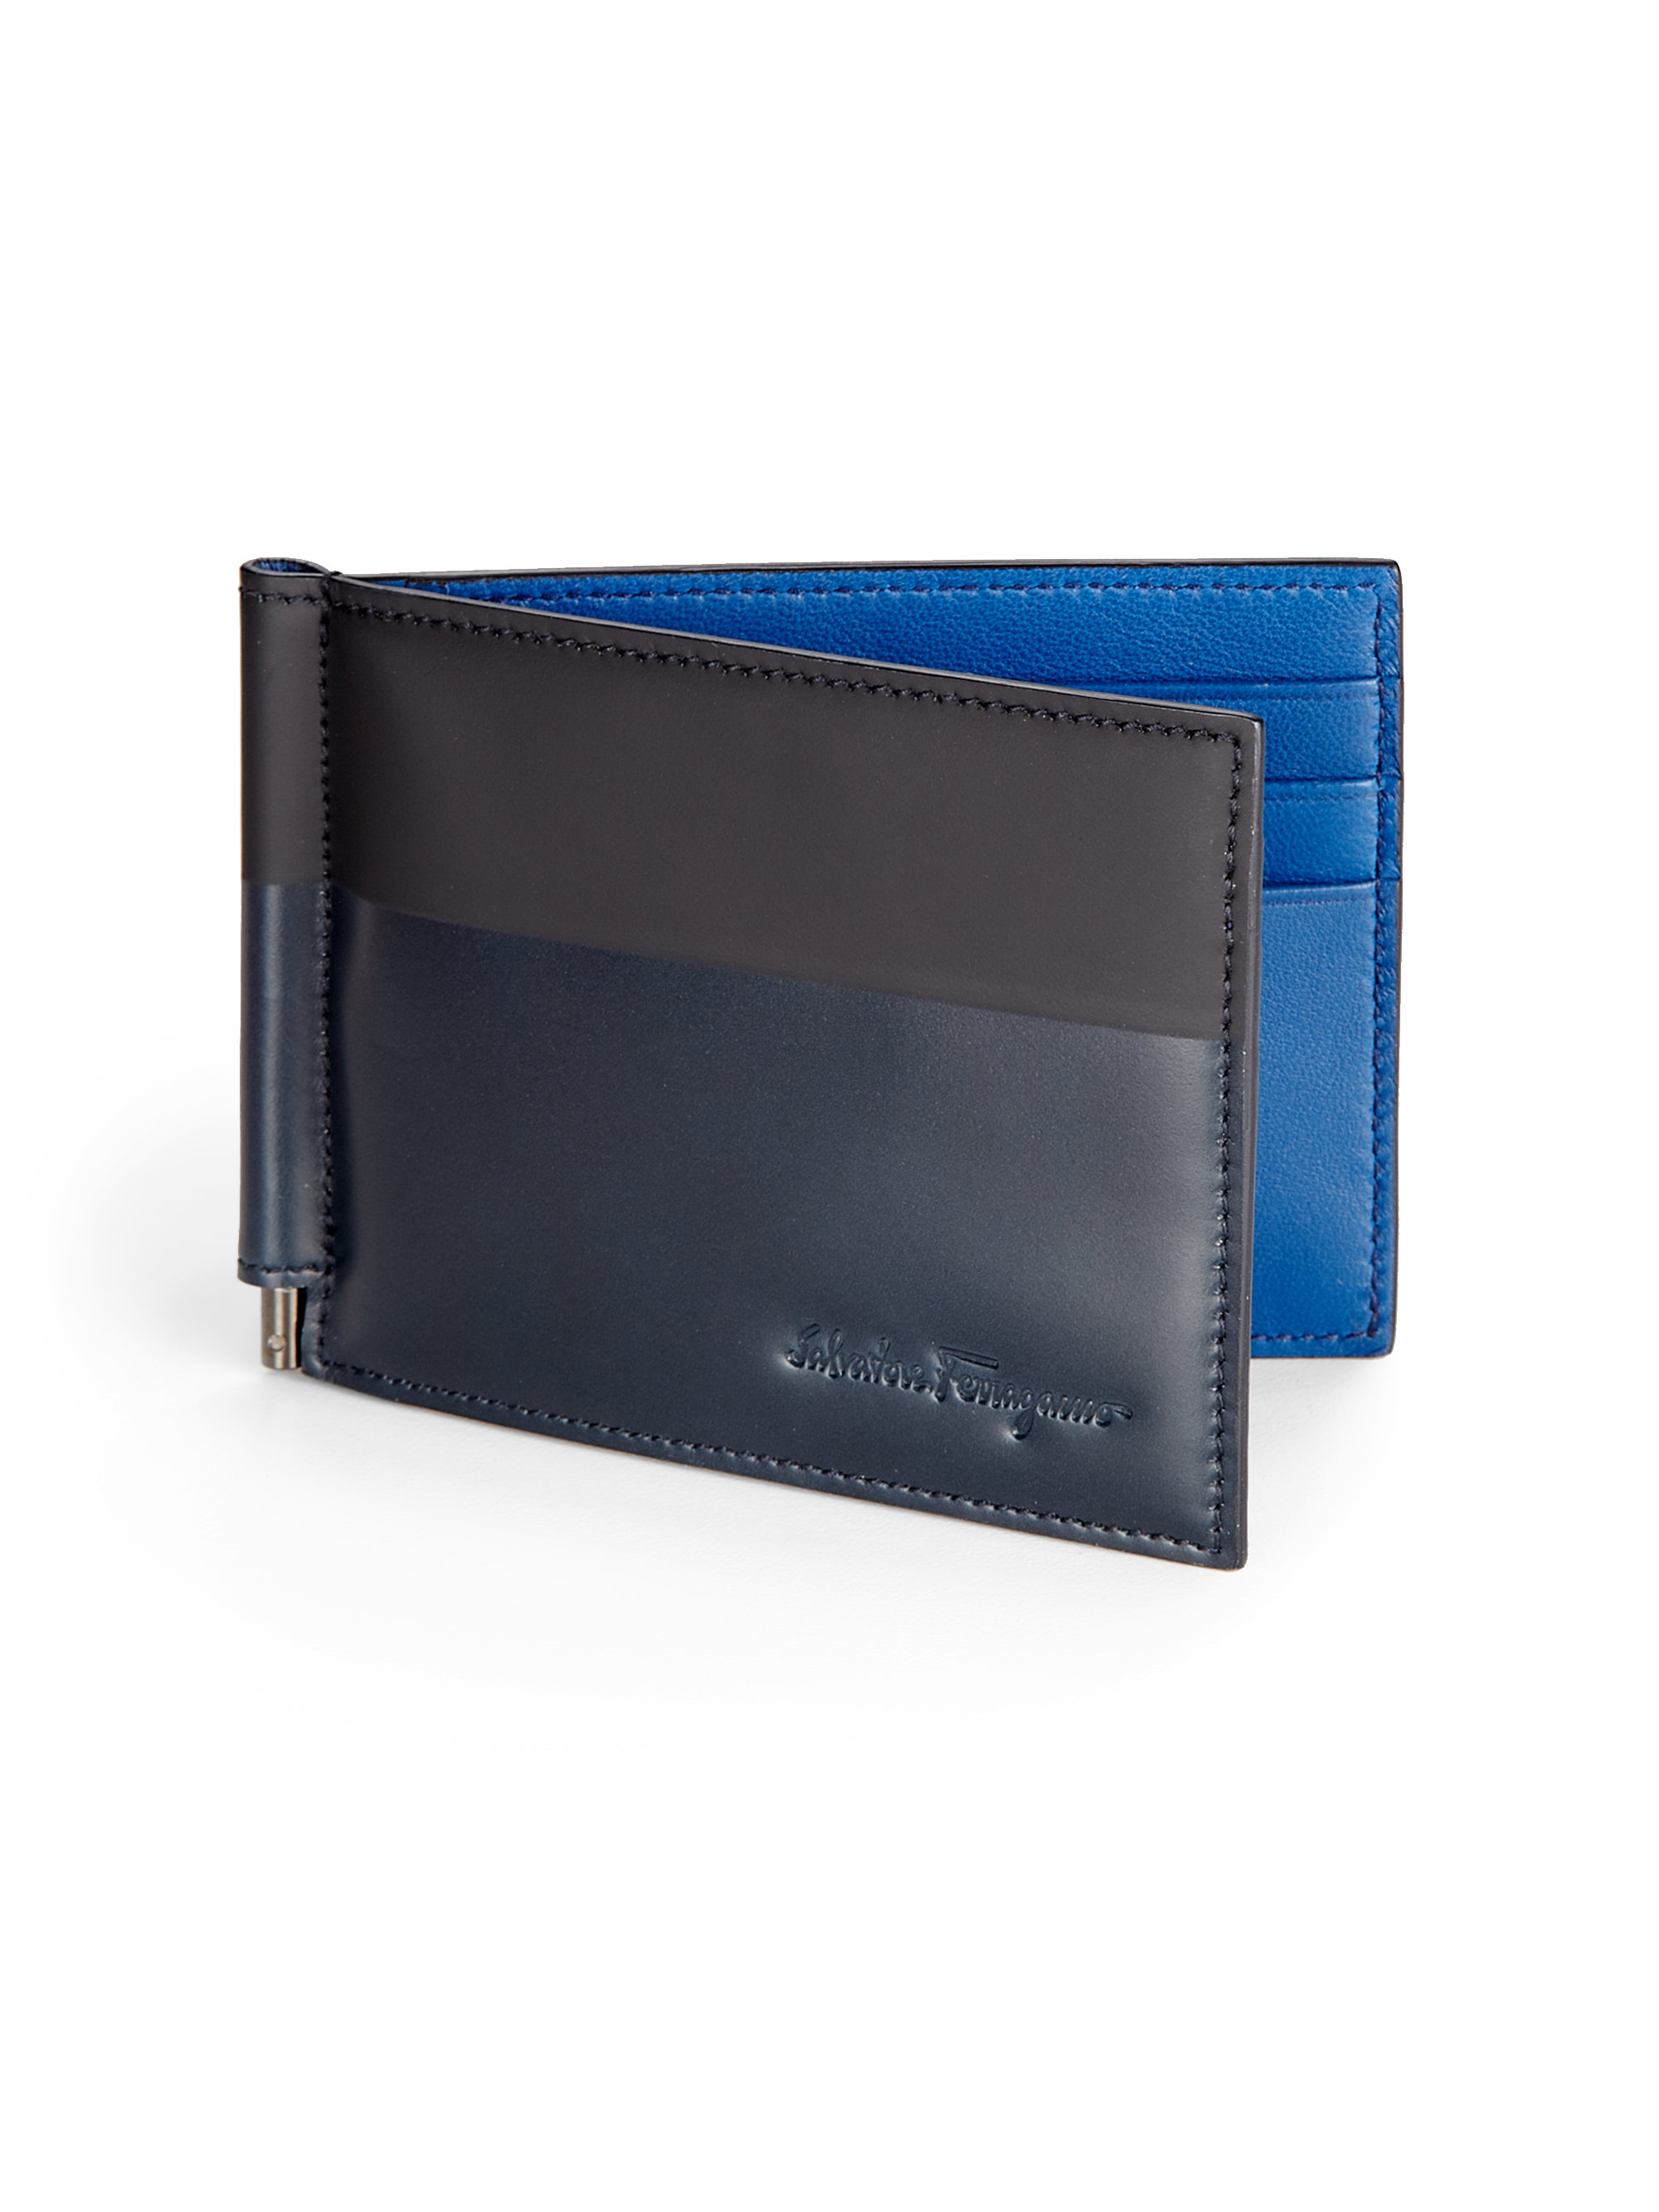 Image Result For Burberry Wallet